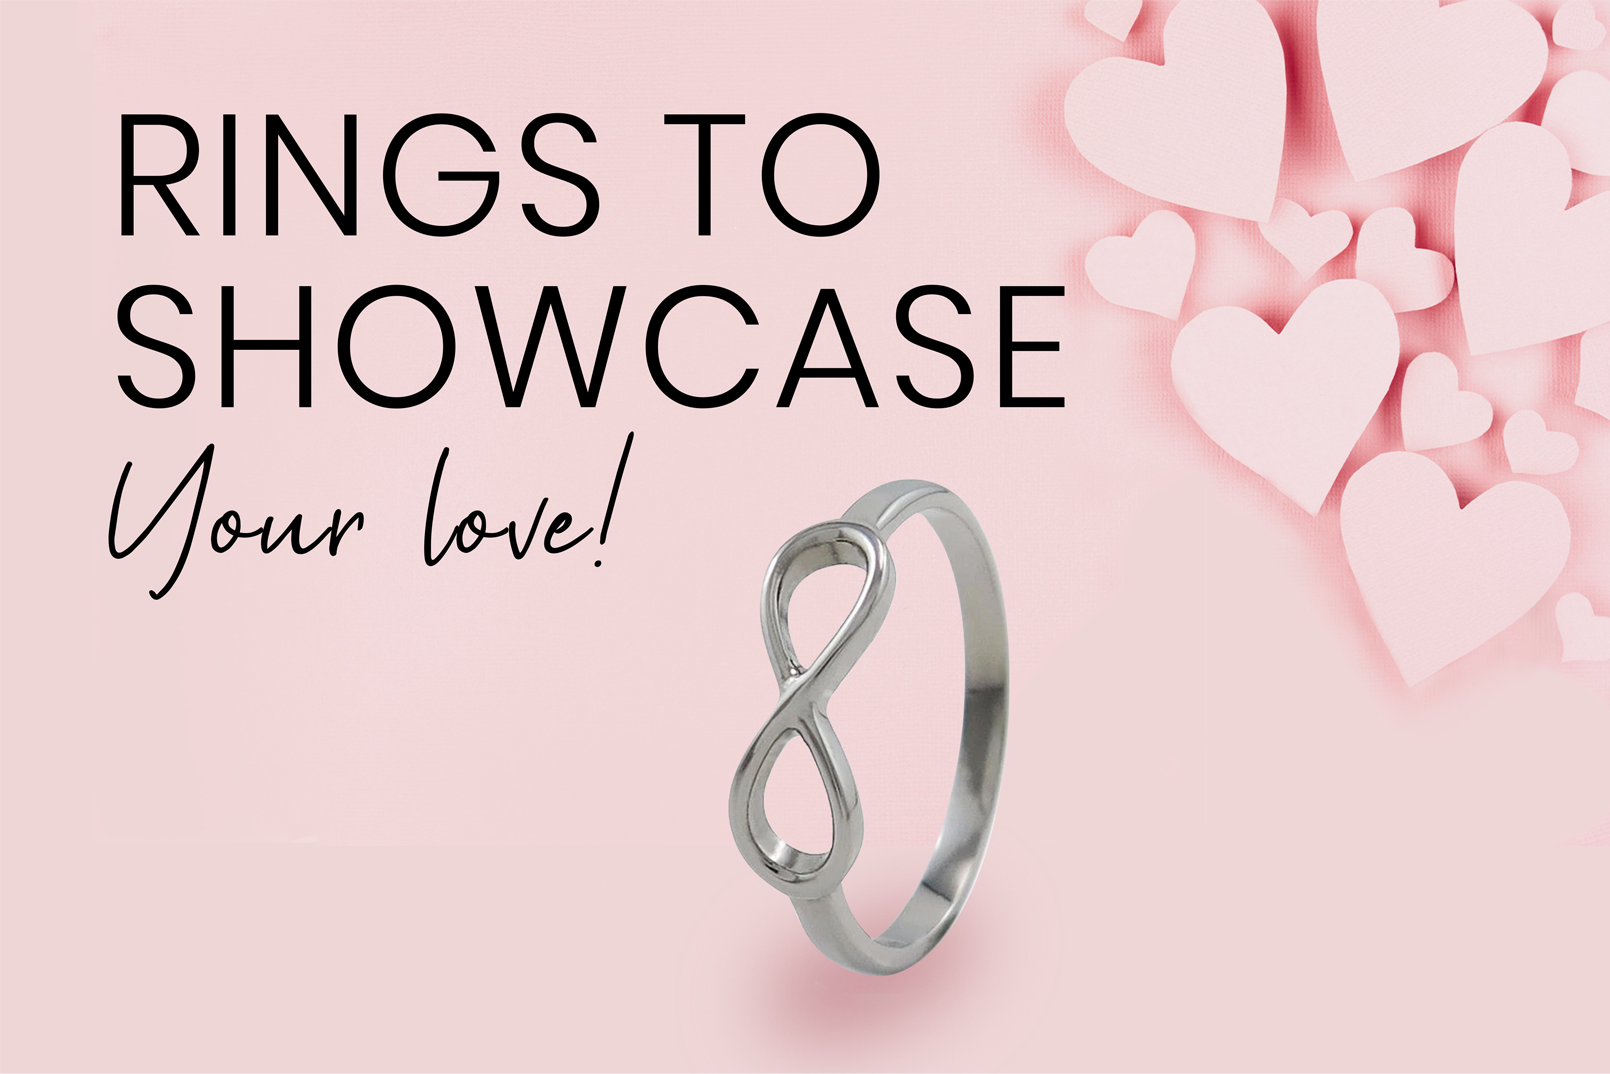 Rings that will showcase your love